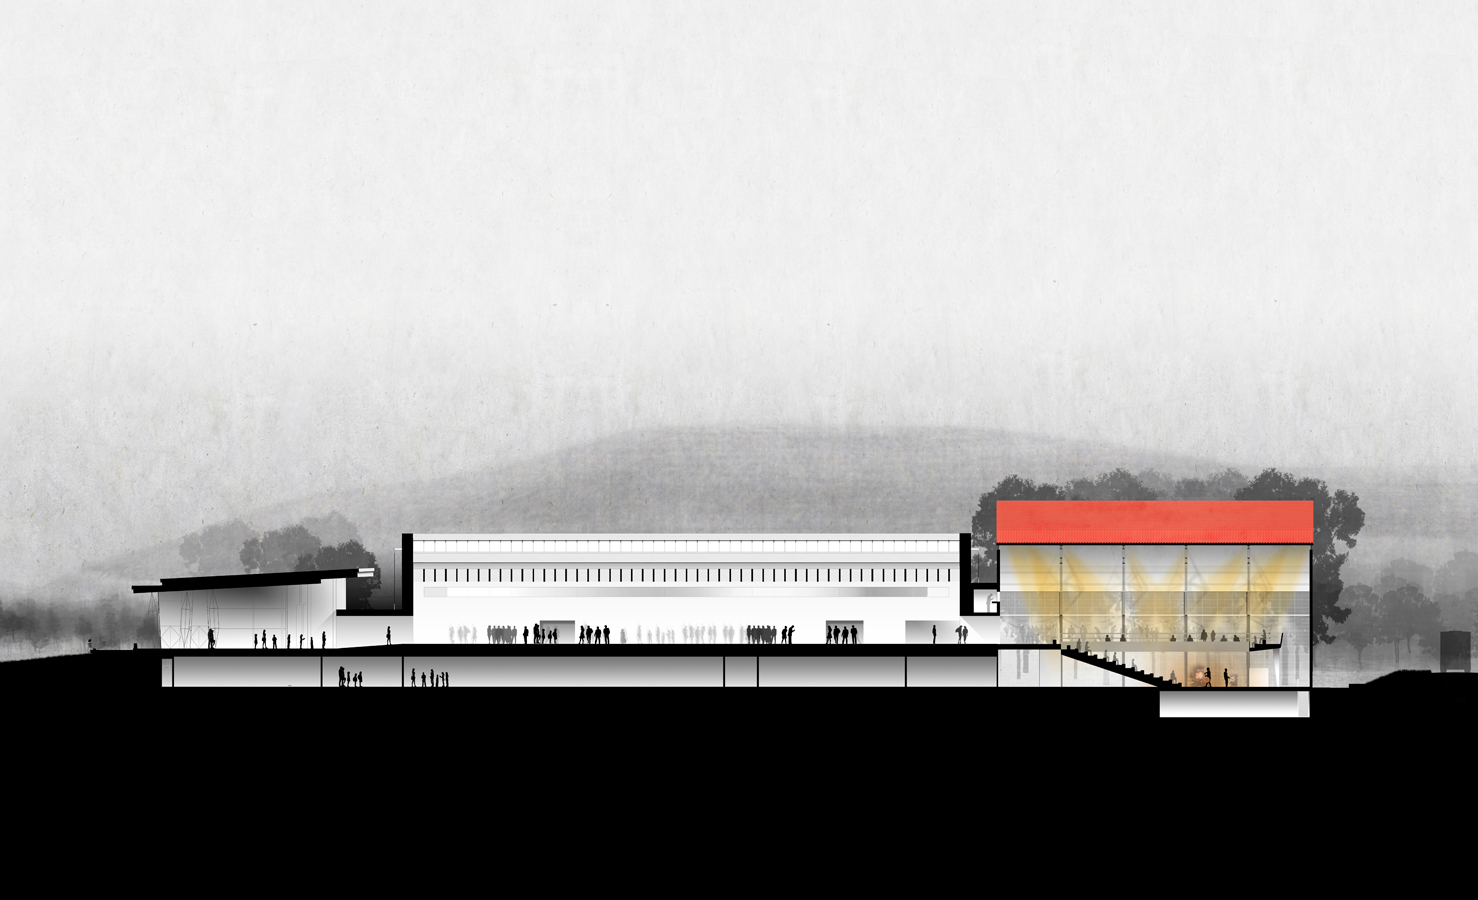 Cross section of the corning museum of glass north wing expansion